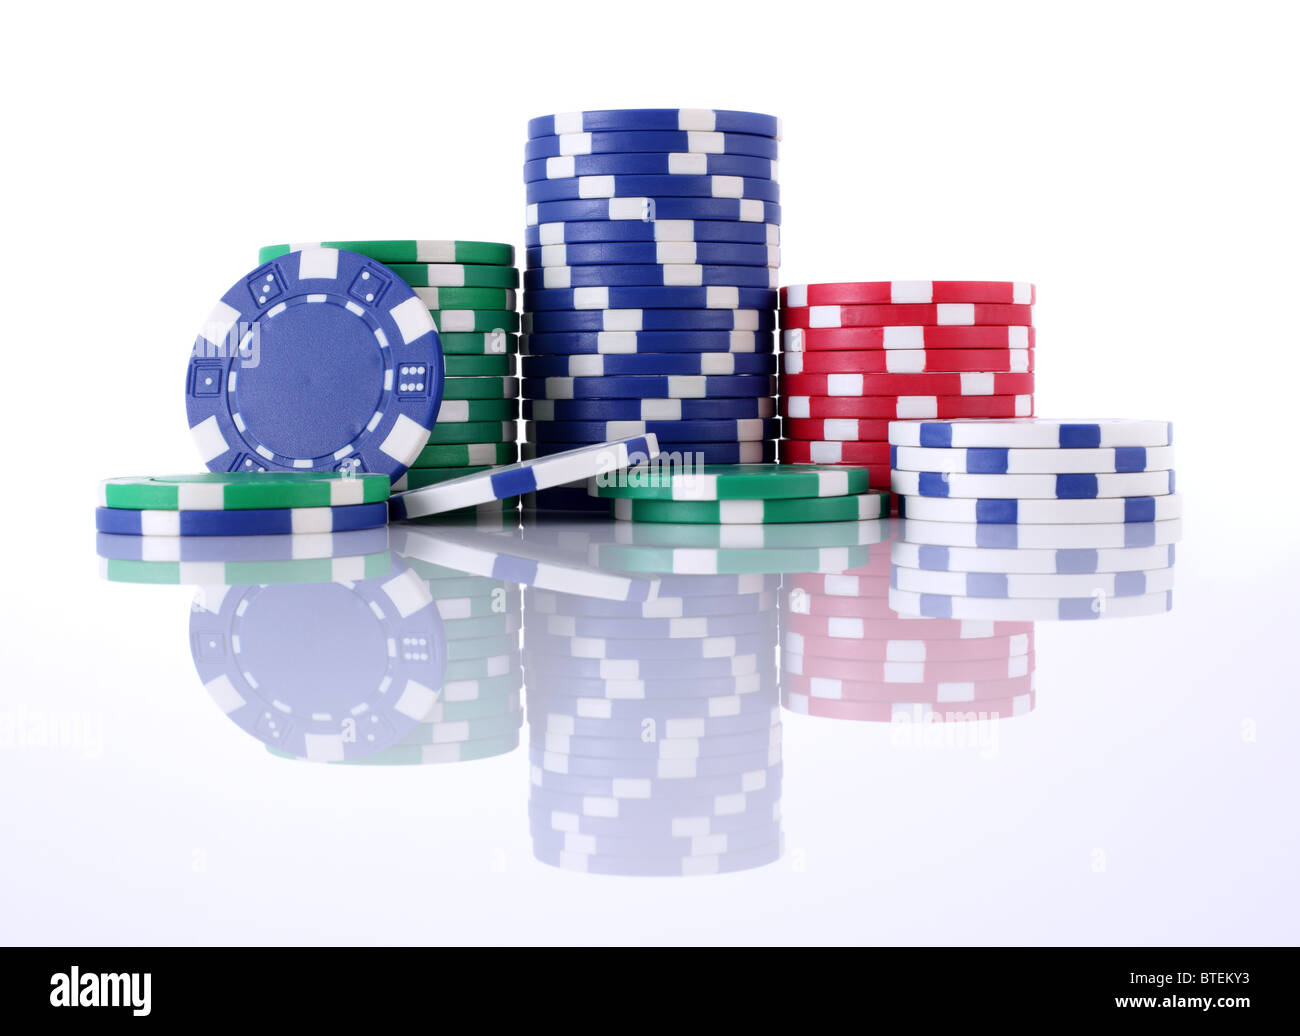 Poker chips - Stock Image